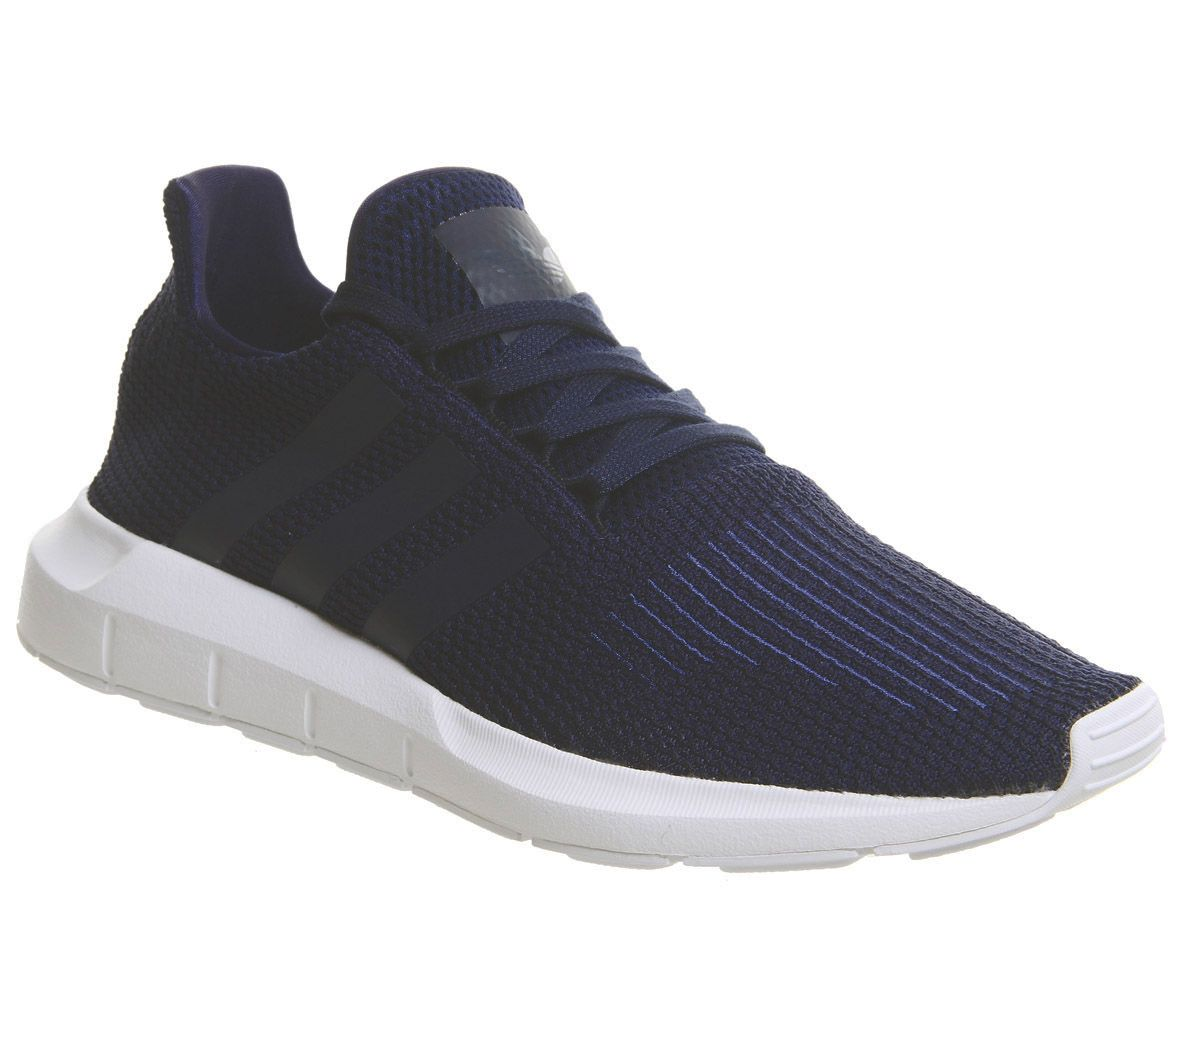 8c49424a5ac23 adidas Swift Run Trainers Collegiate Navy - Unisex Sports